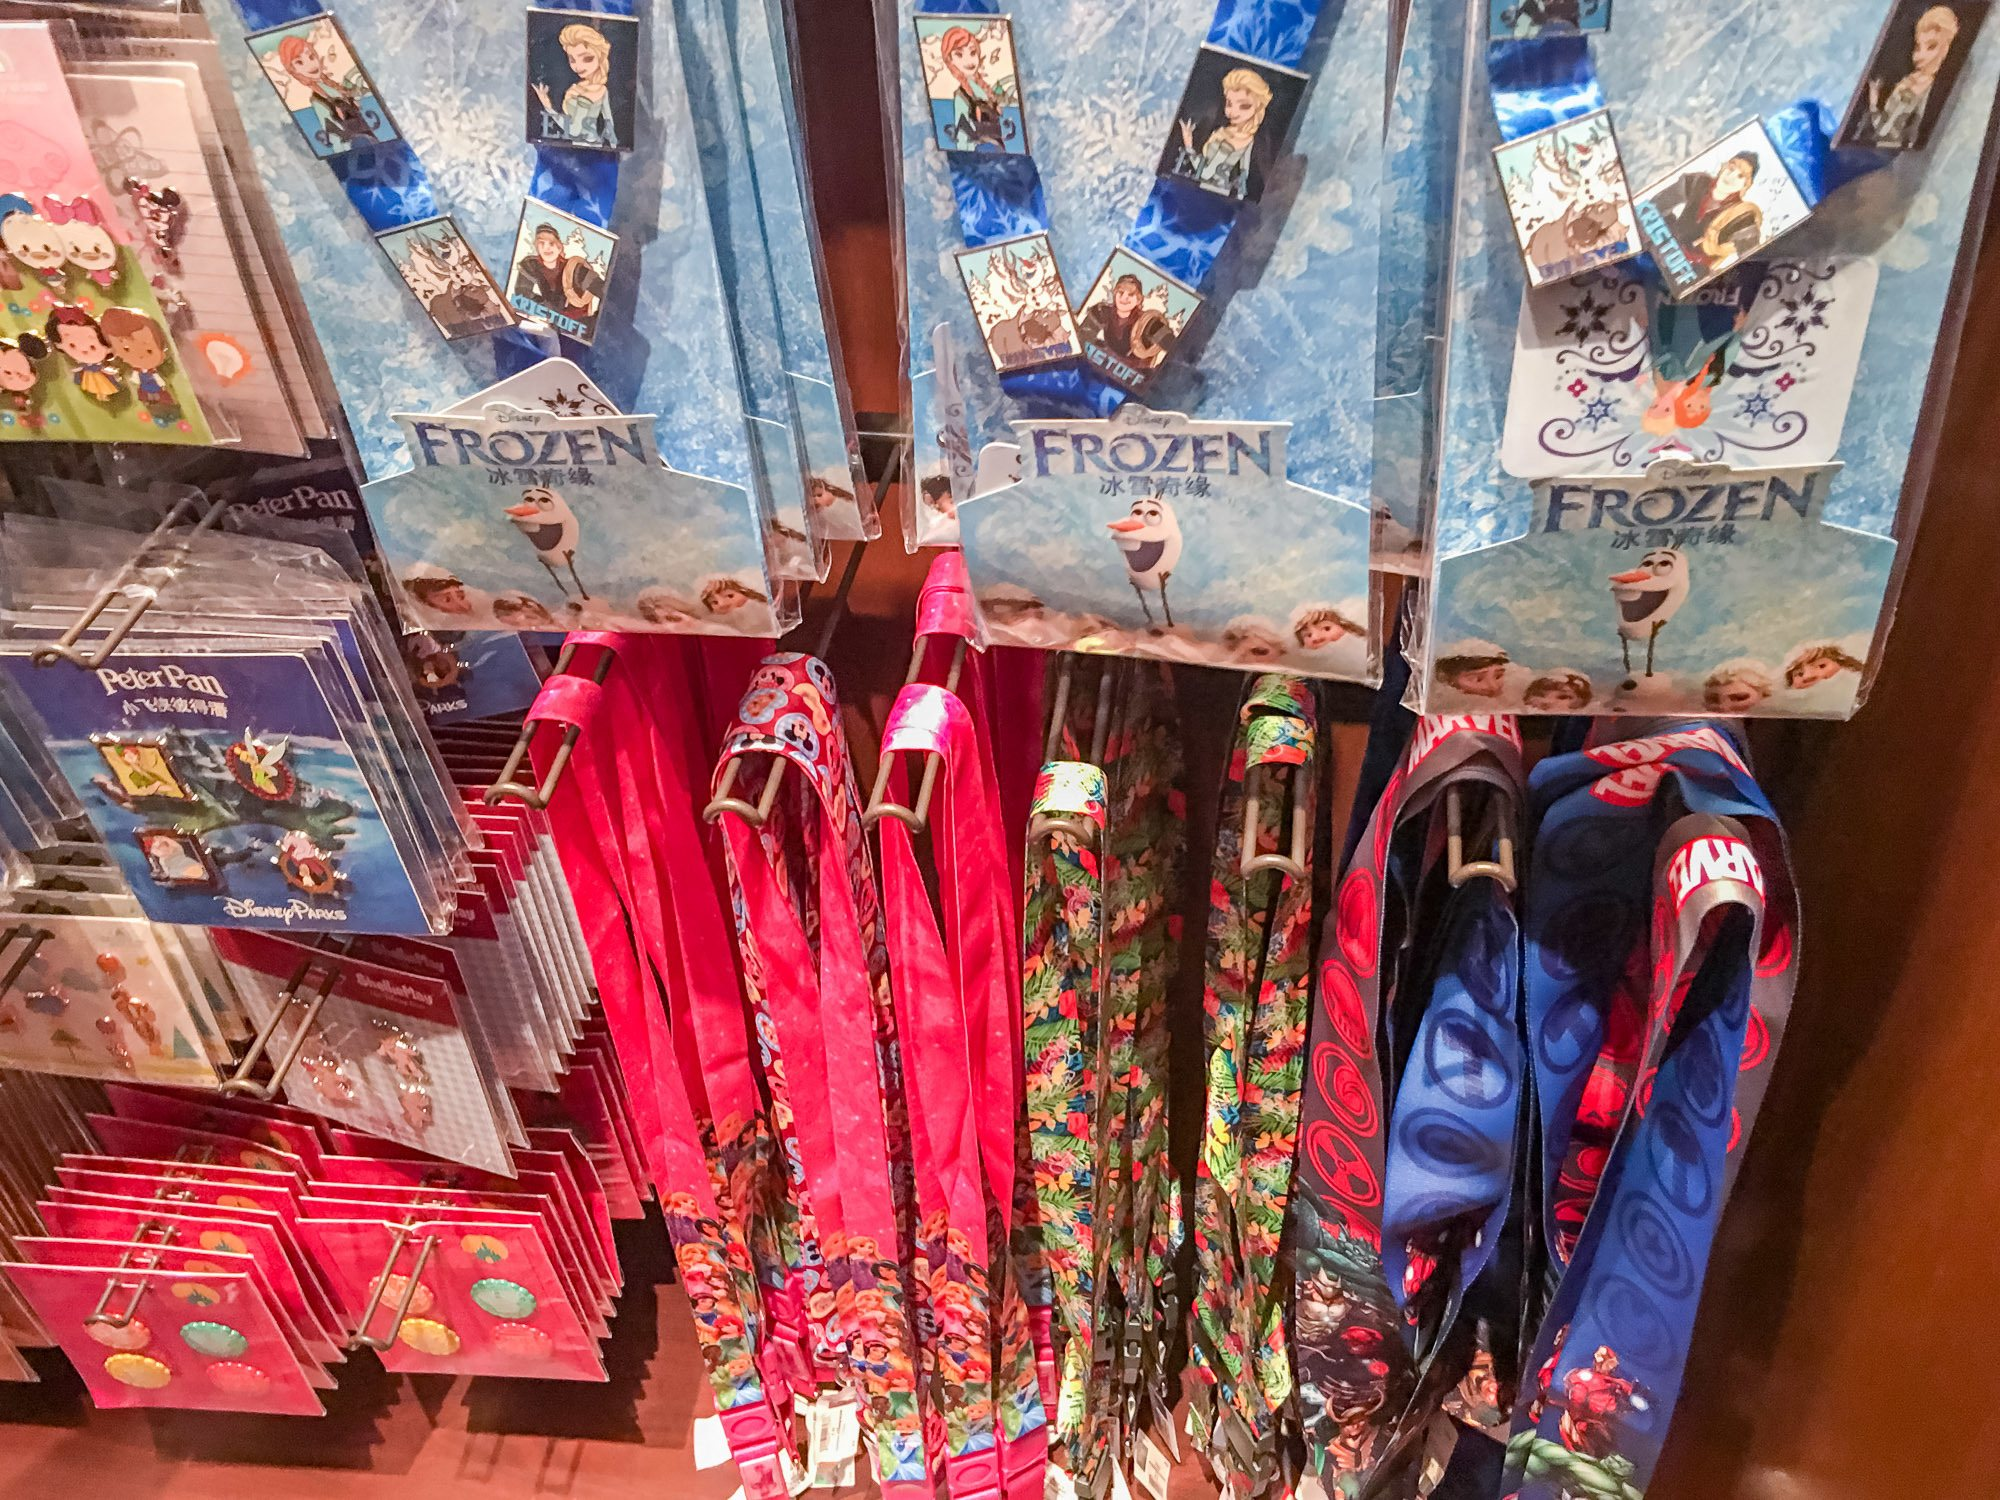 Lanyards are a good idea for holding your FastPasses and paper ticket at Shanghai Disneyland.